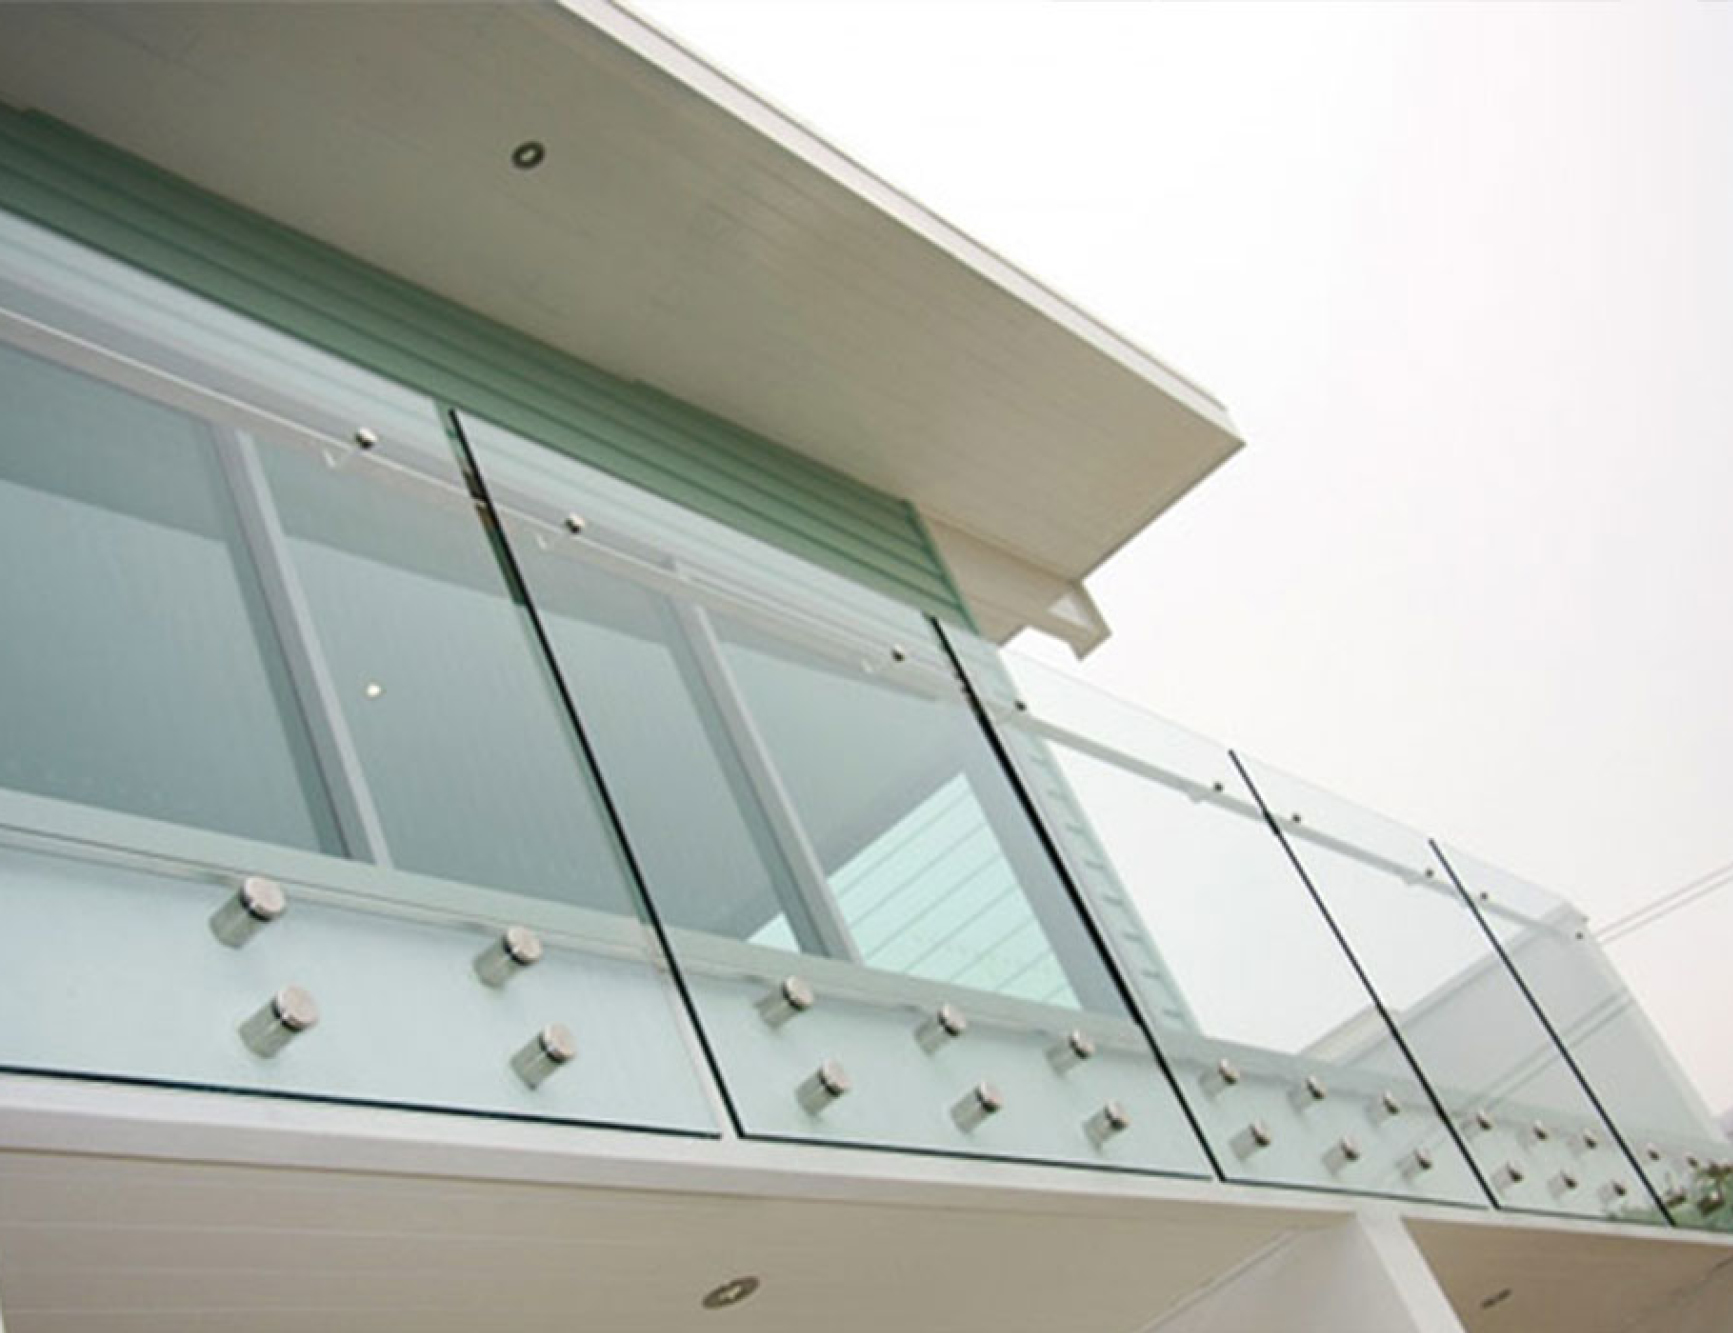 melbourne-glass-group-balustrade2.jpg